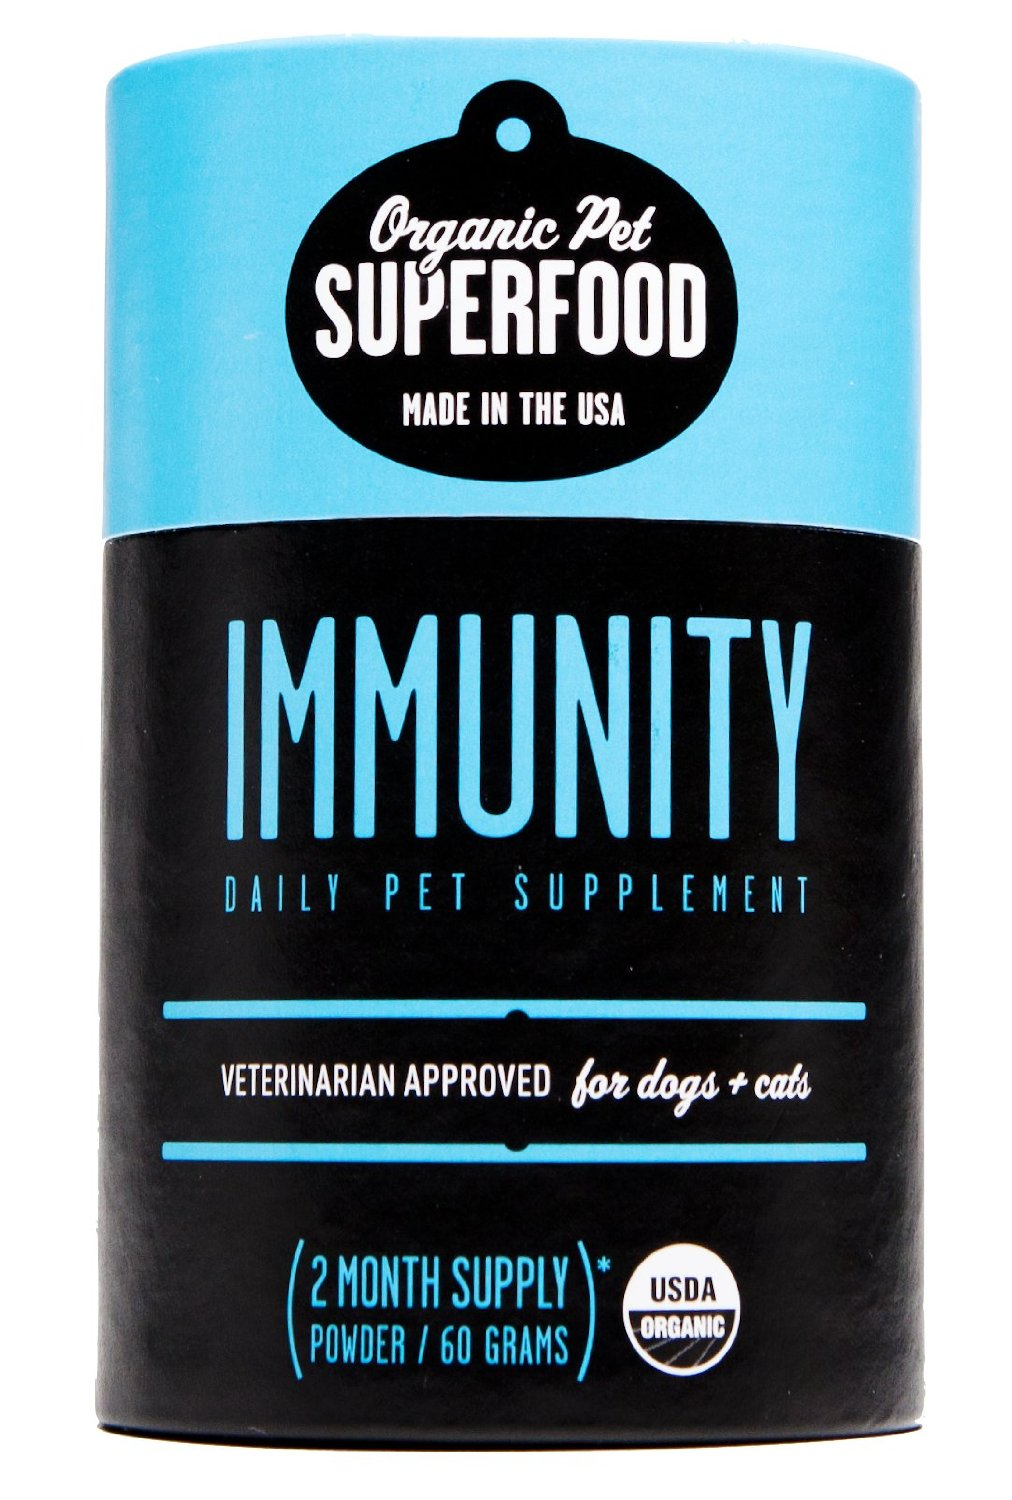 Organic Pet Superfood IMMUNITY Premium Supplement